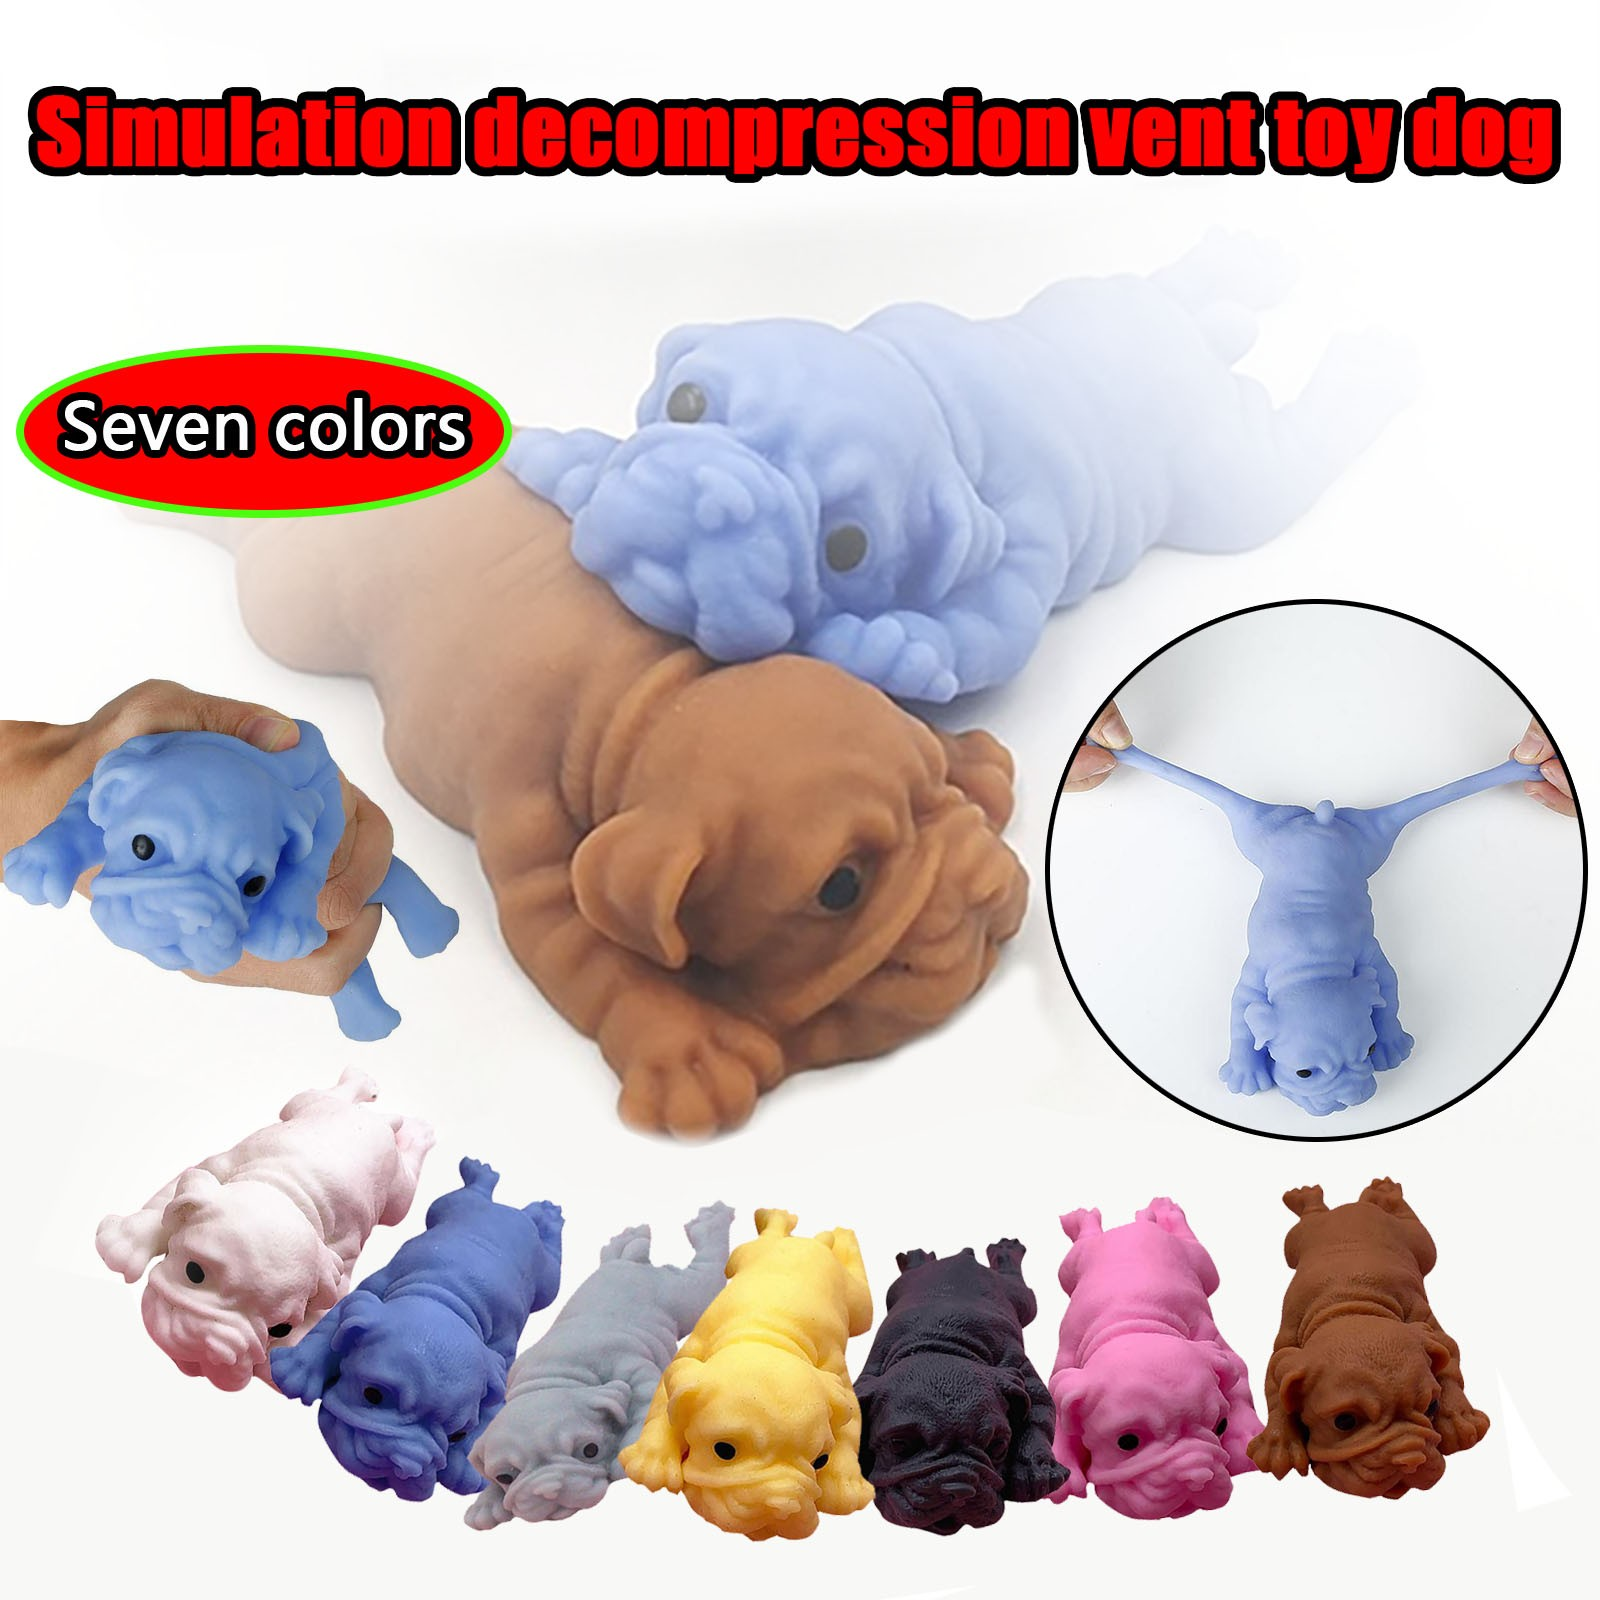 Toy Fidget-Toys Puzzle Simulation-Decompression Holiday-Gifts Anti-Stress Squishy Anime img1